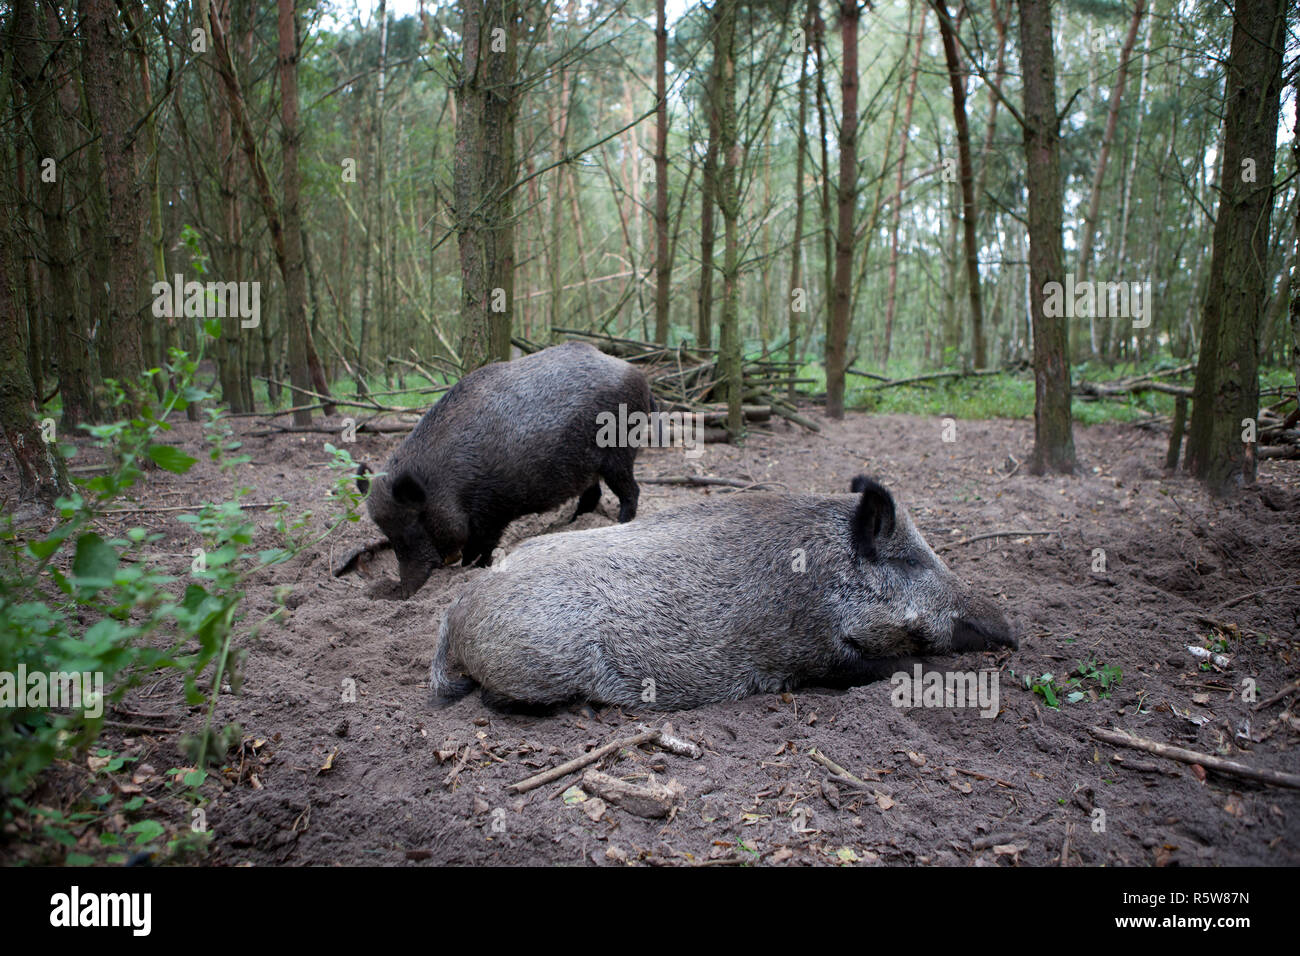 two boars in the forest - Stock Image